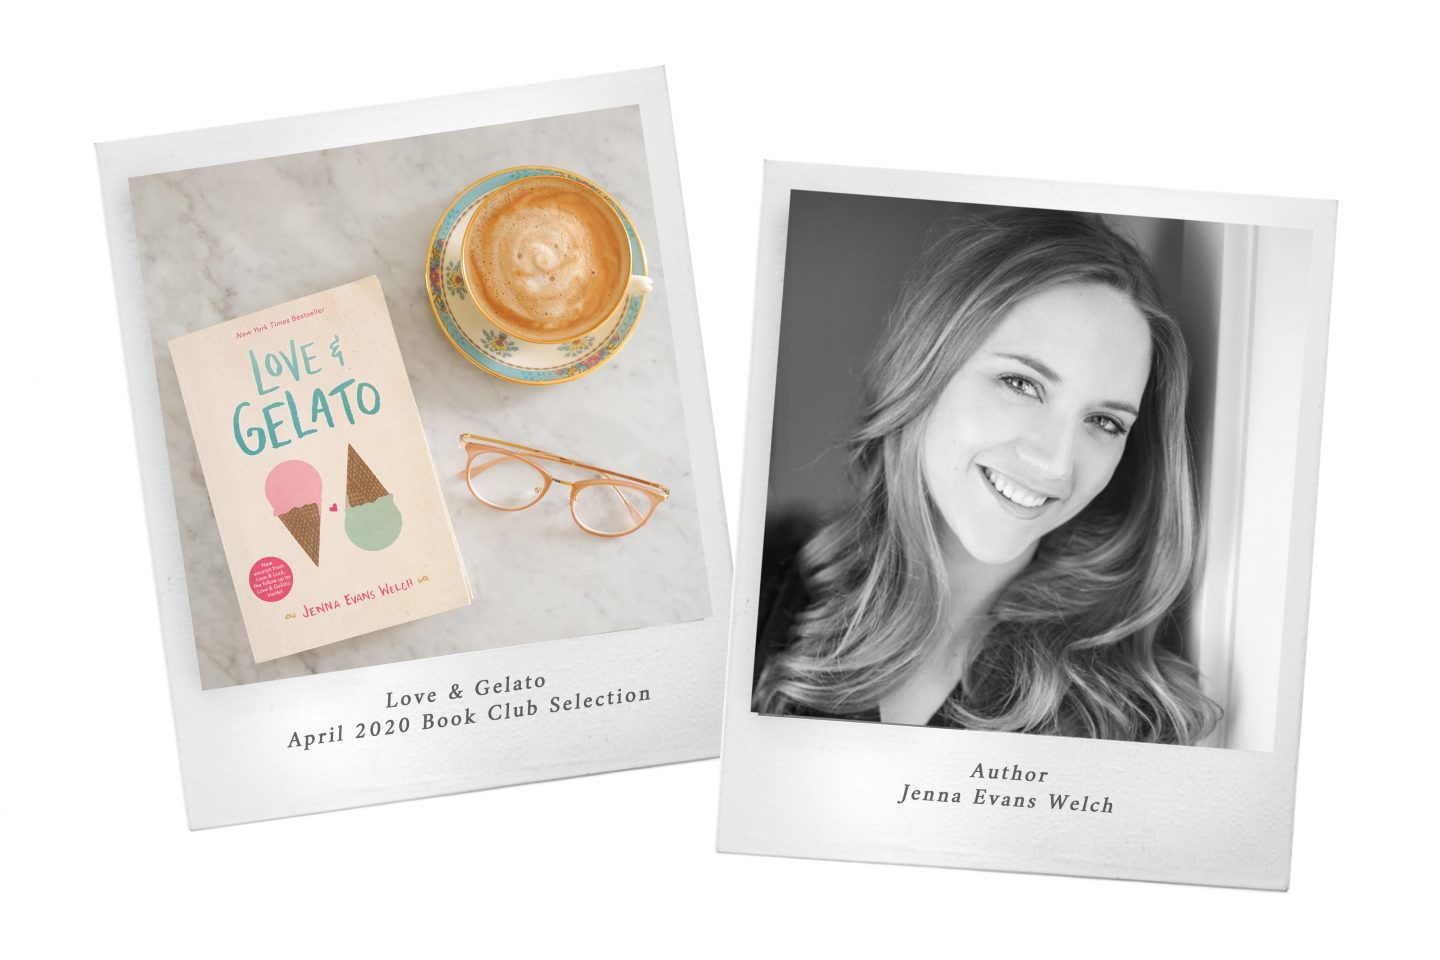 Love & Gelato author Jenna Evans Welch on Ashley Brooke Book Club